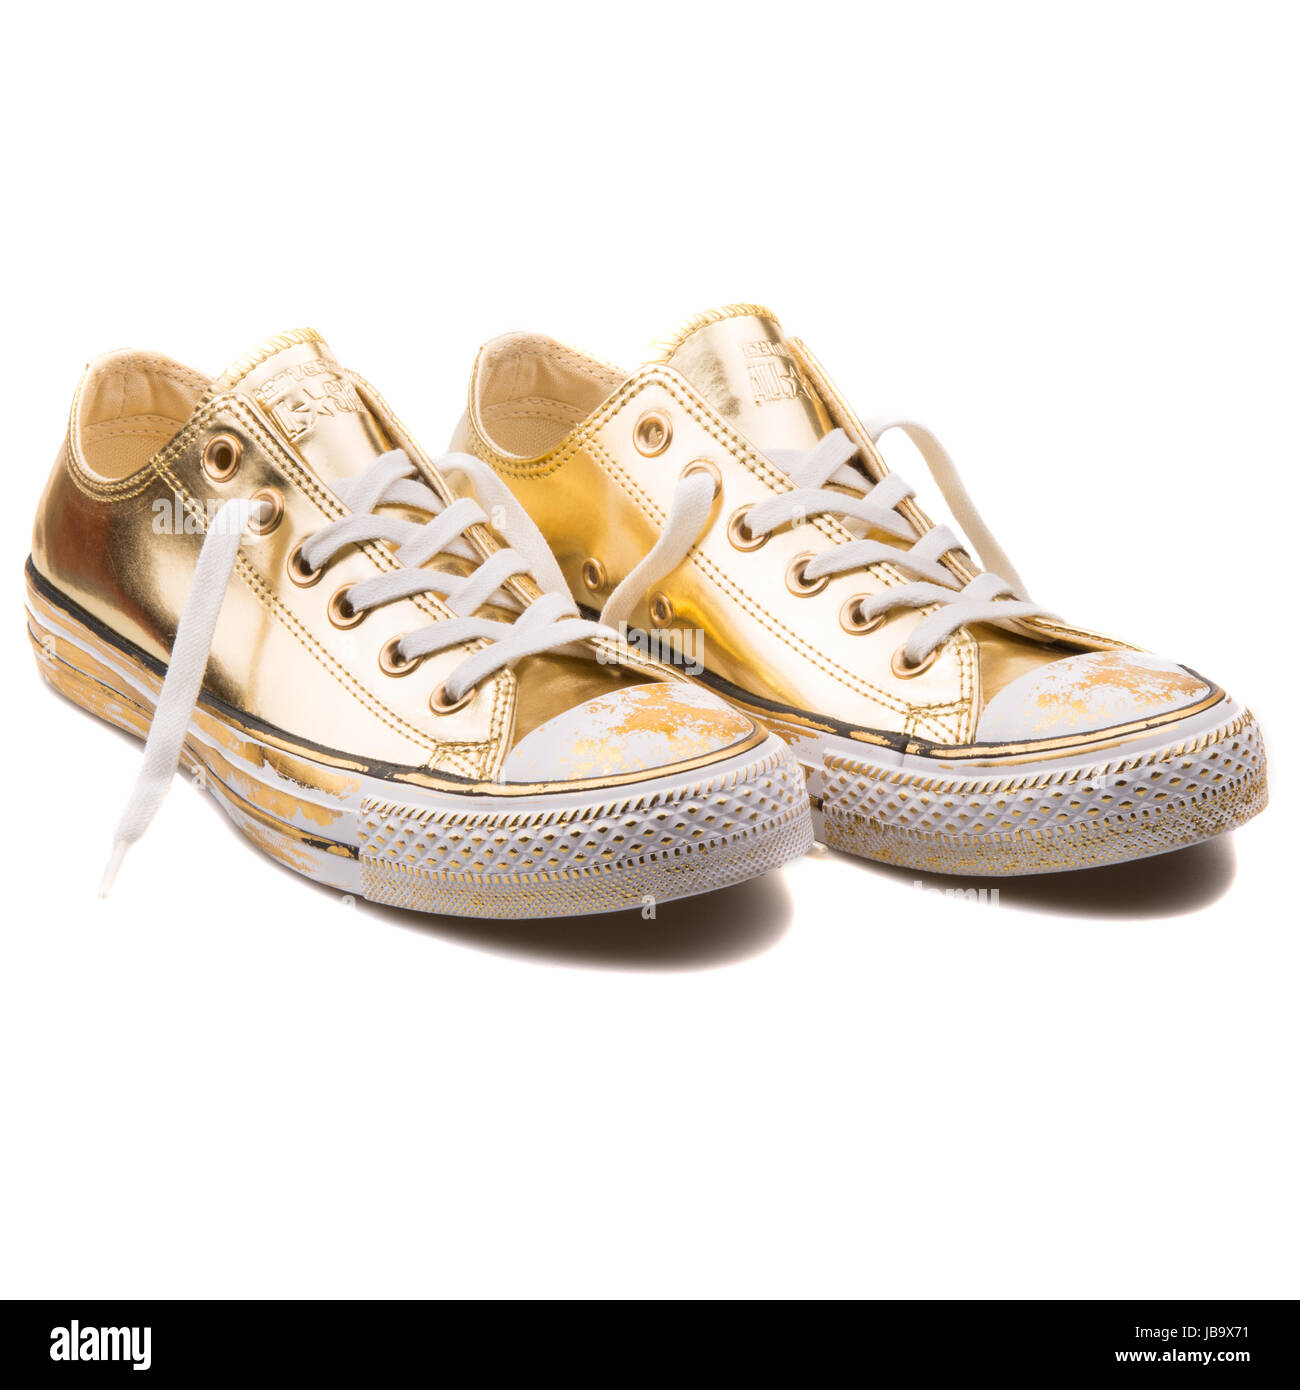 60b2cda99acb Converse Chuck Taylor All Star Chrome Gold Leather and White OX Women s  Shoes - 549653C